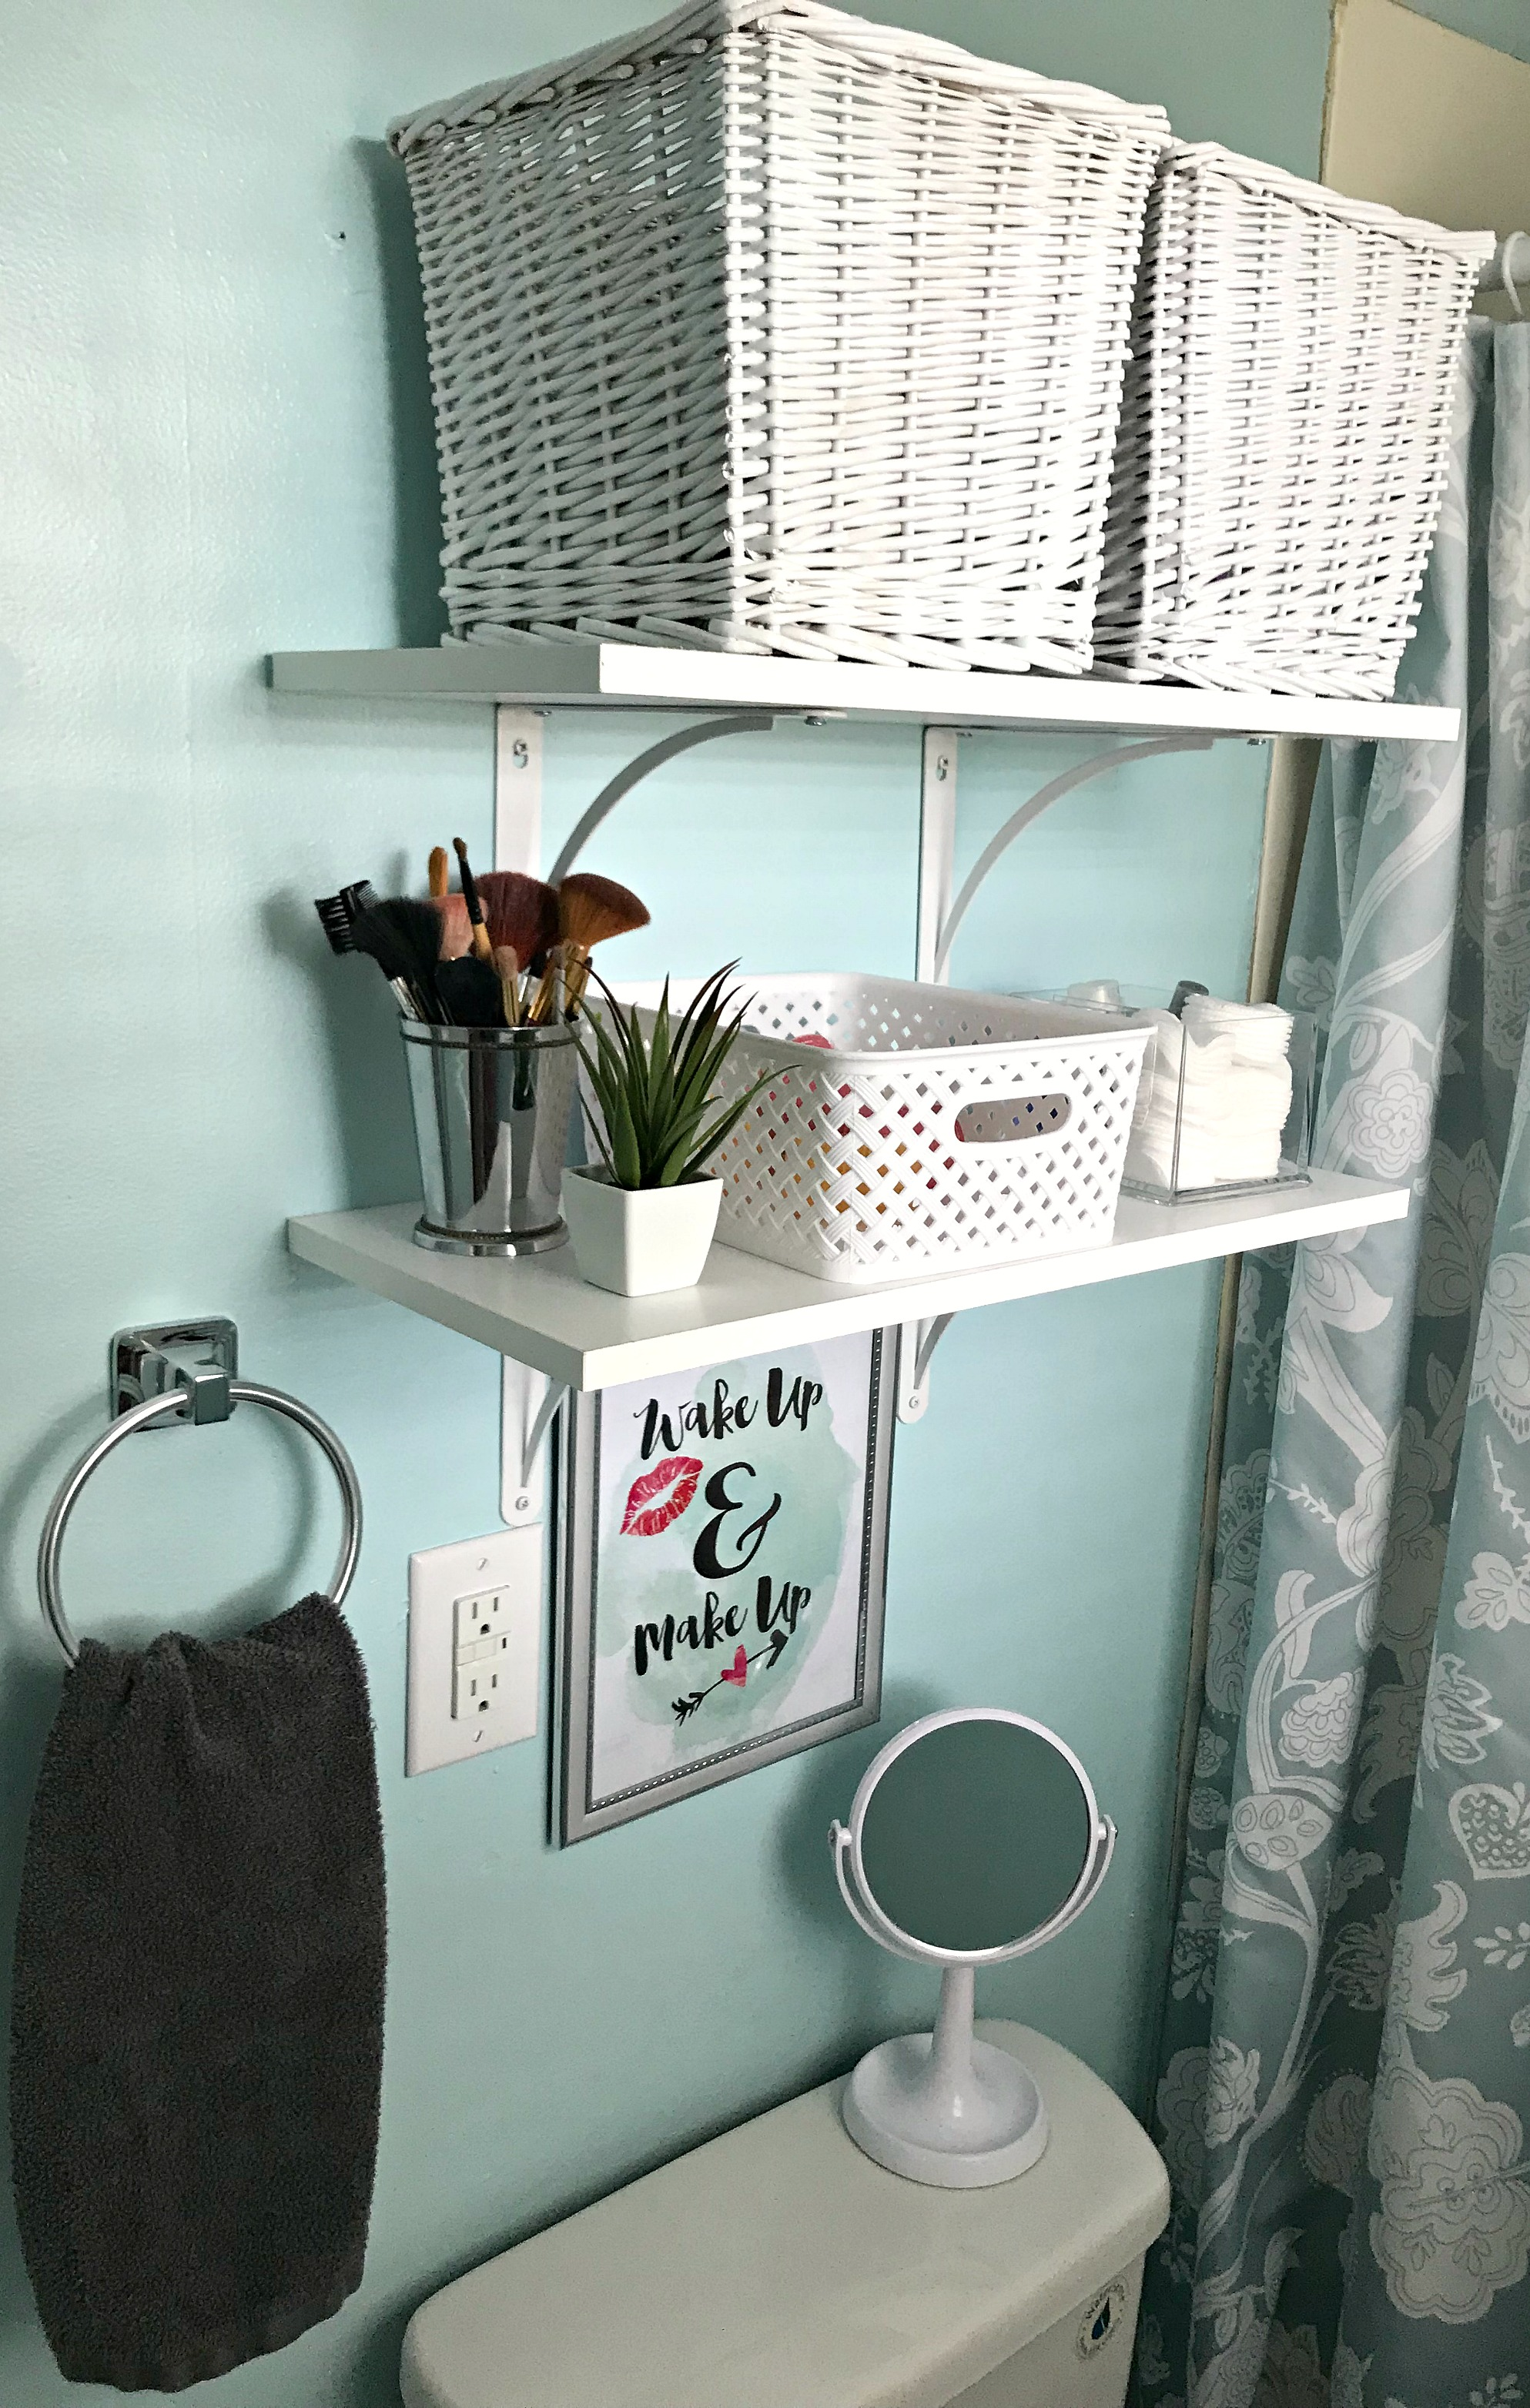 Bathroom Remodel Reveal {On A Budget} – Come Home For Comfort